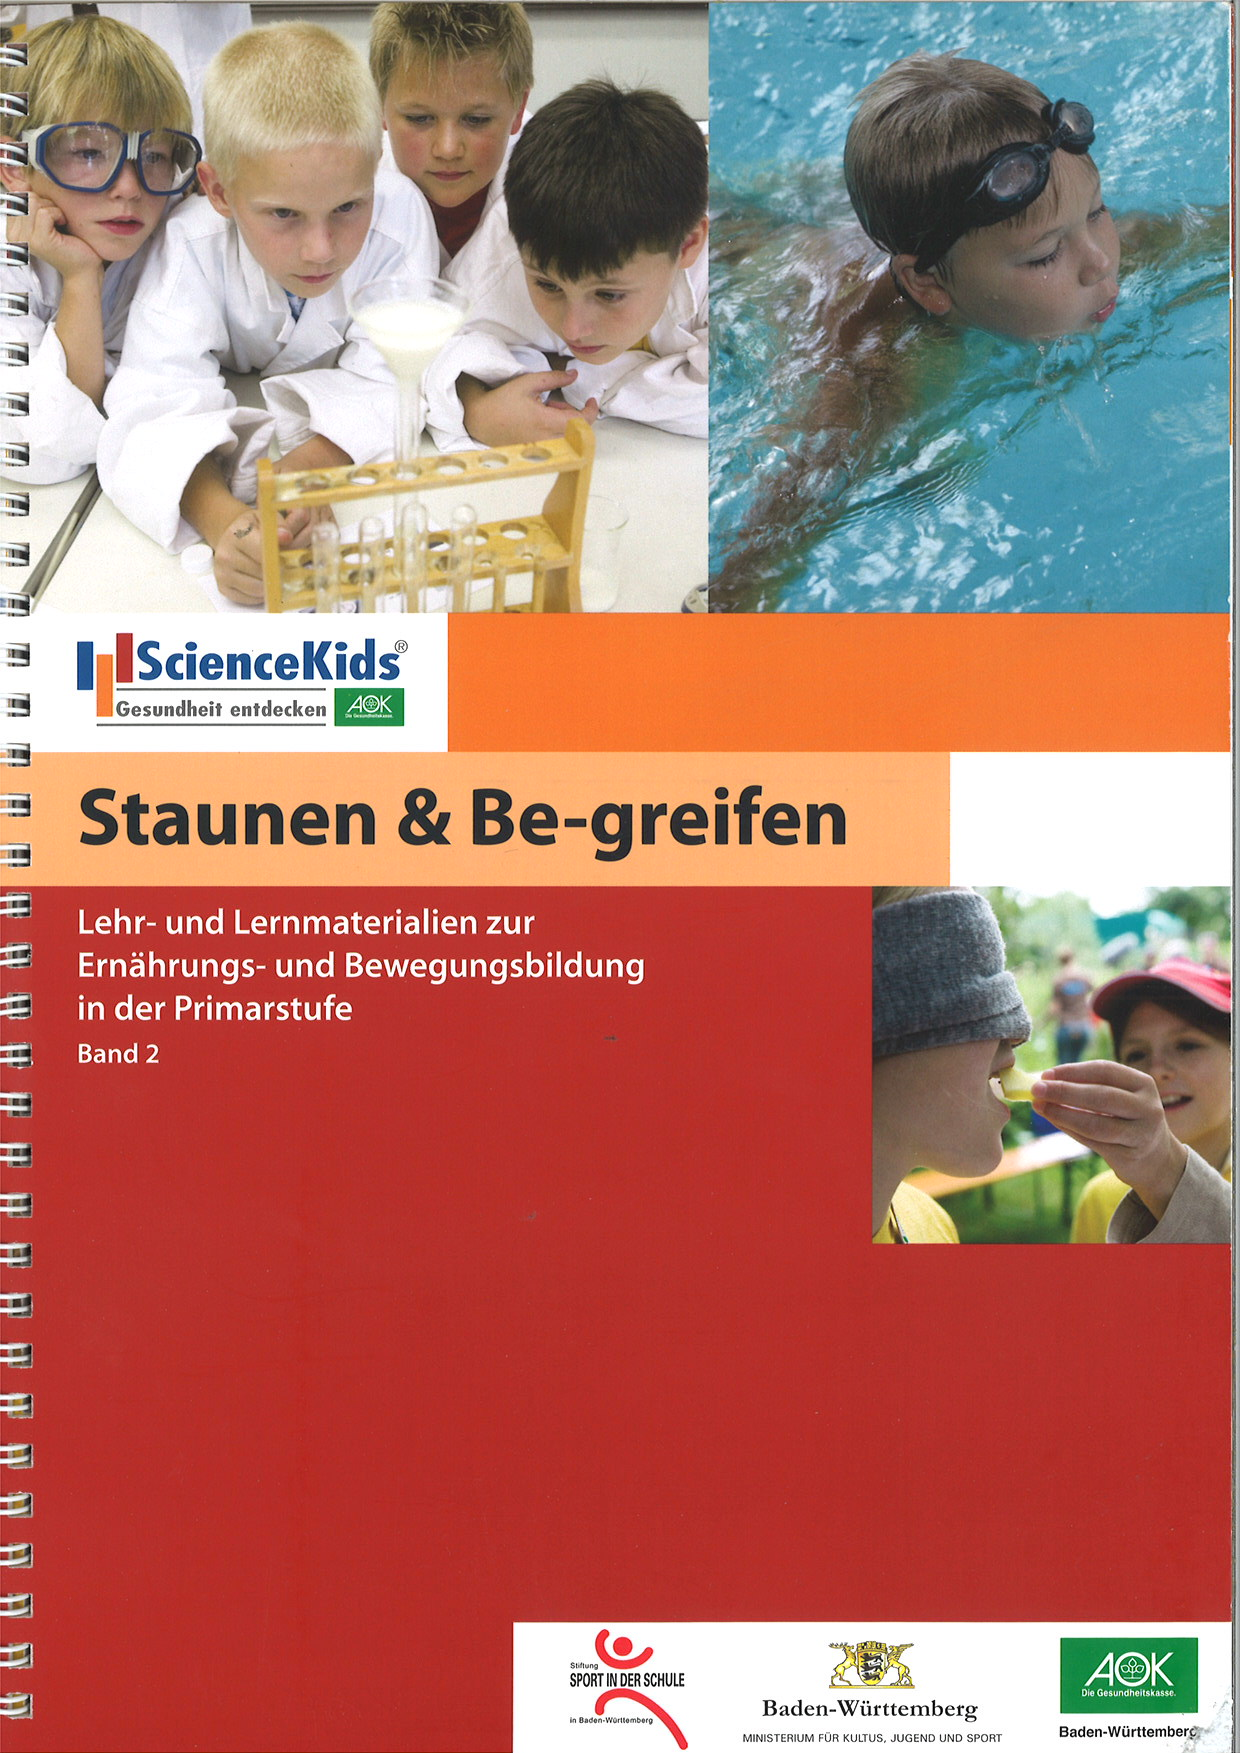 ScienceKids Staunen & Be-greifen